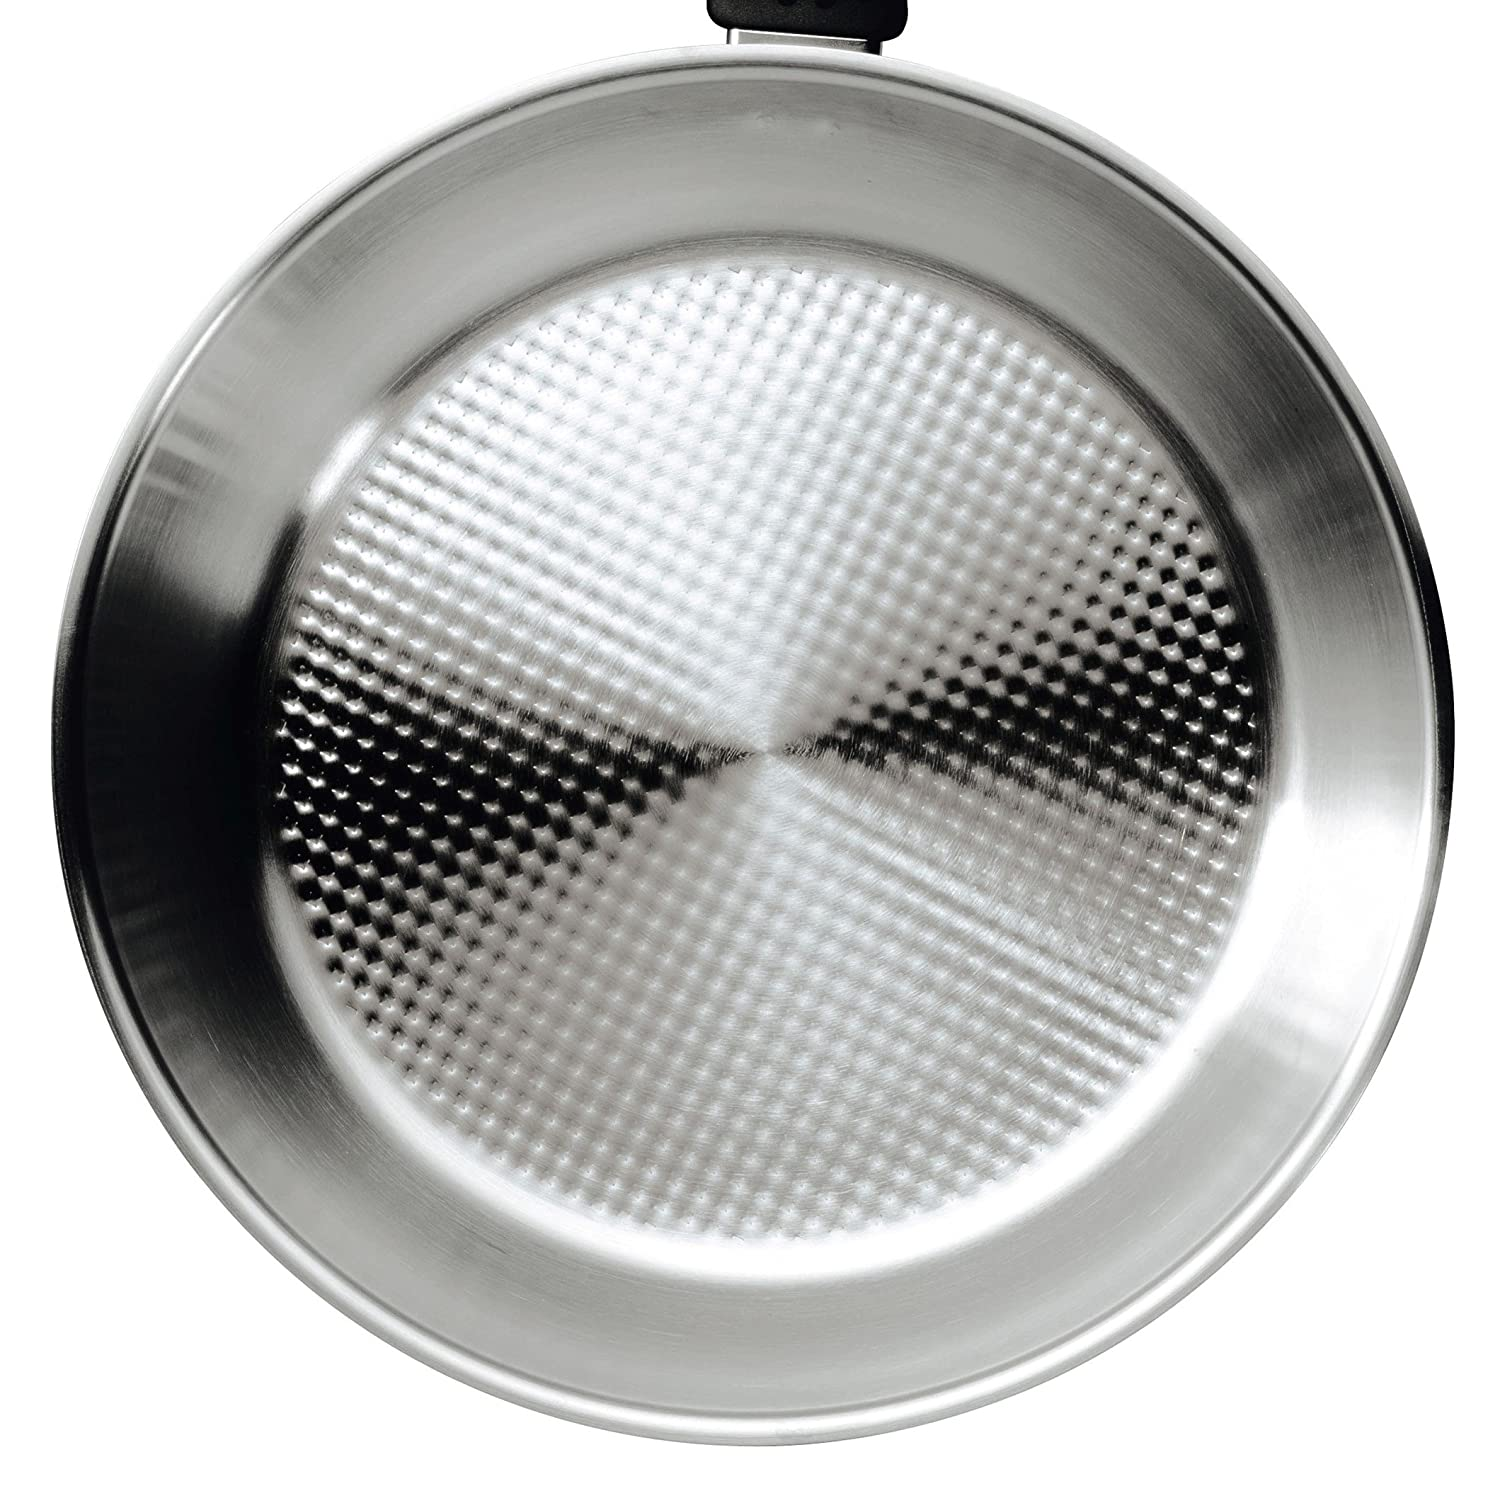 Amazon.com: Kuhn Rikon Silver Star Frying Pan with Super Thermic Sandwich Base, 10.25